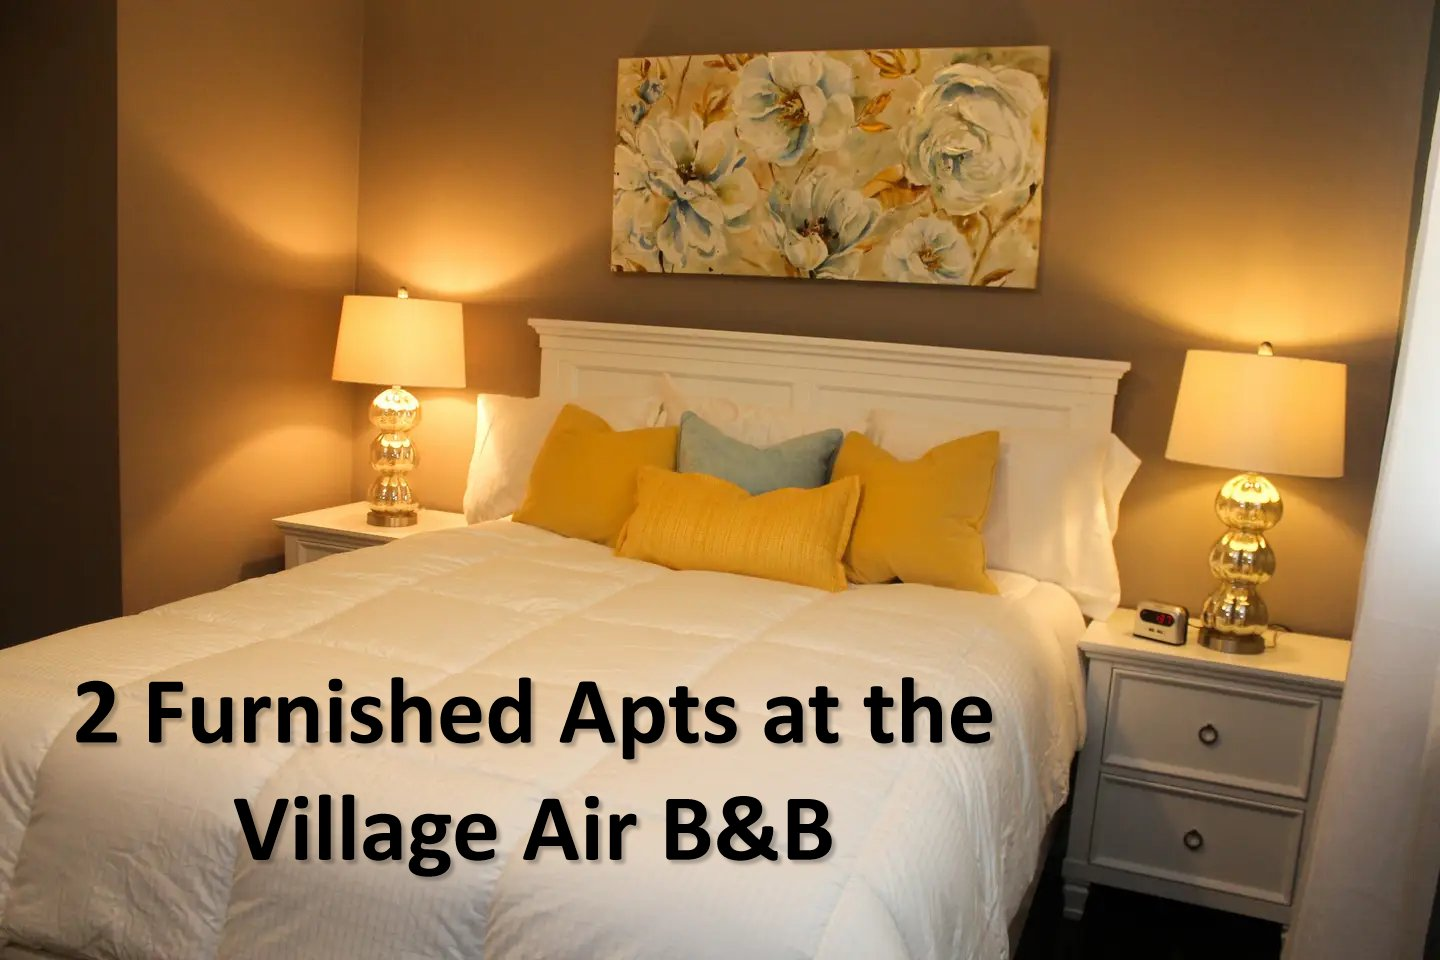 Village Air B&B Slide Image